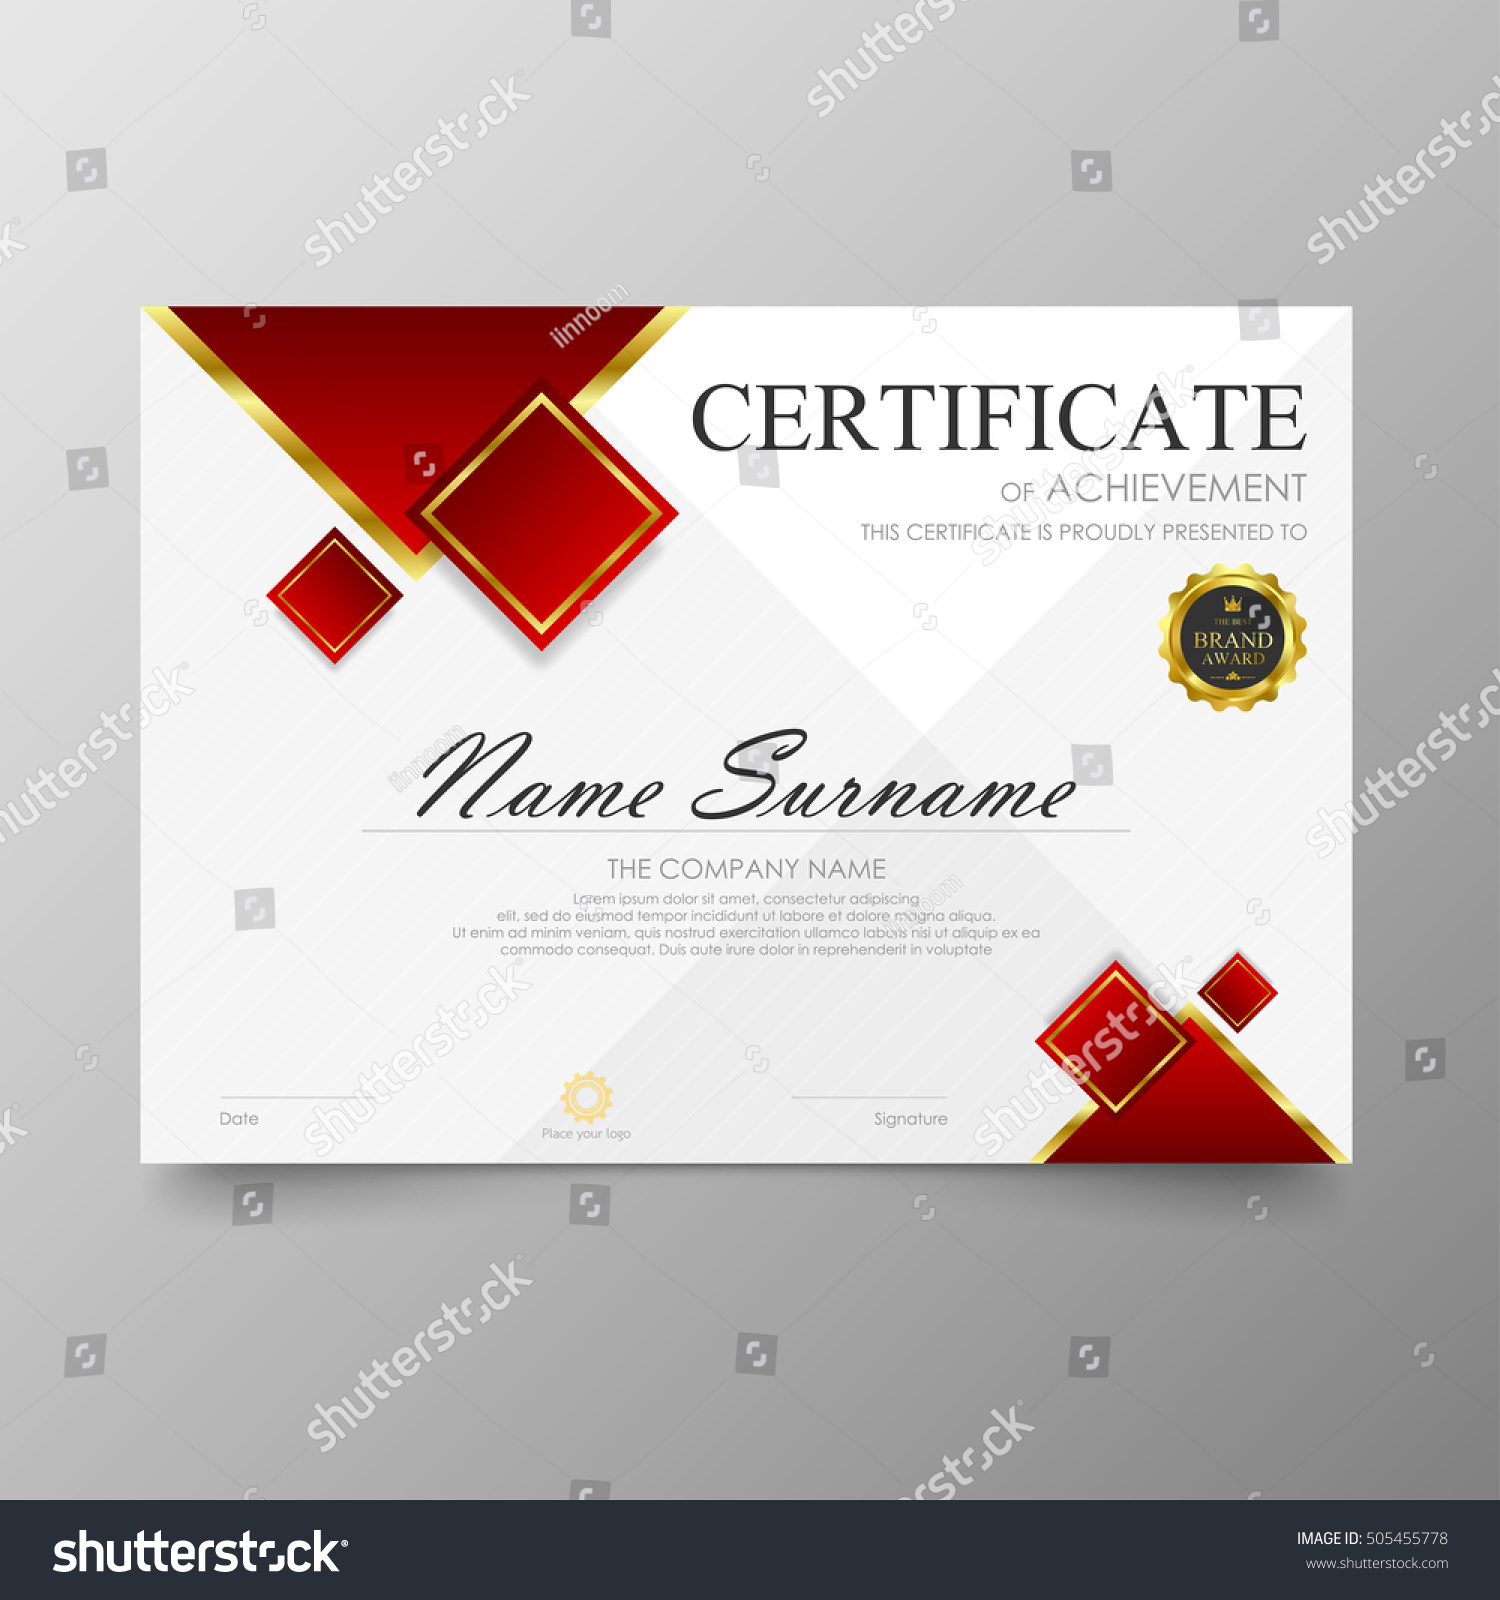 Business Certificates Templates